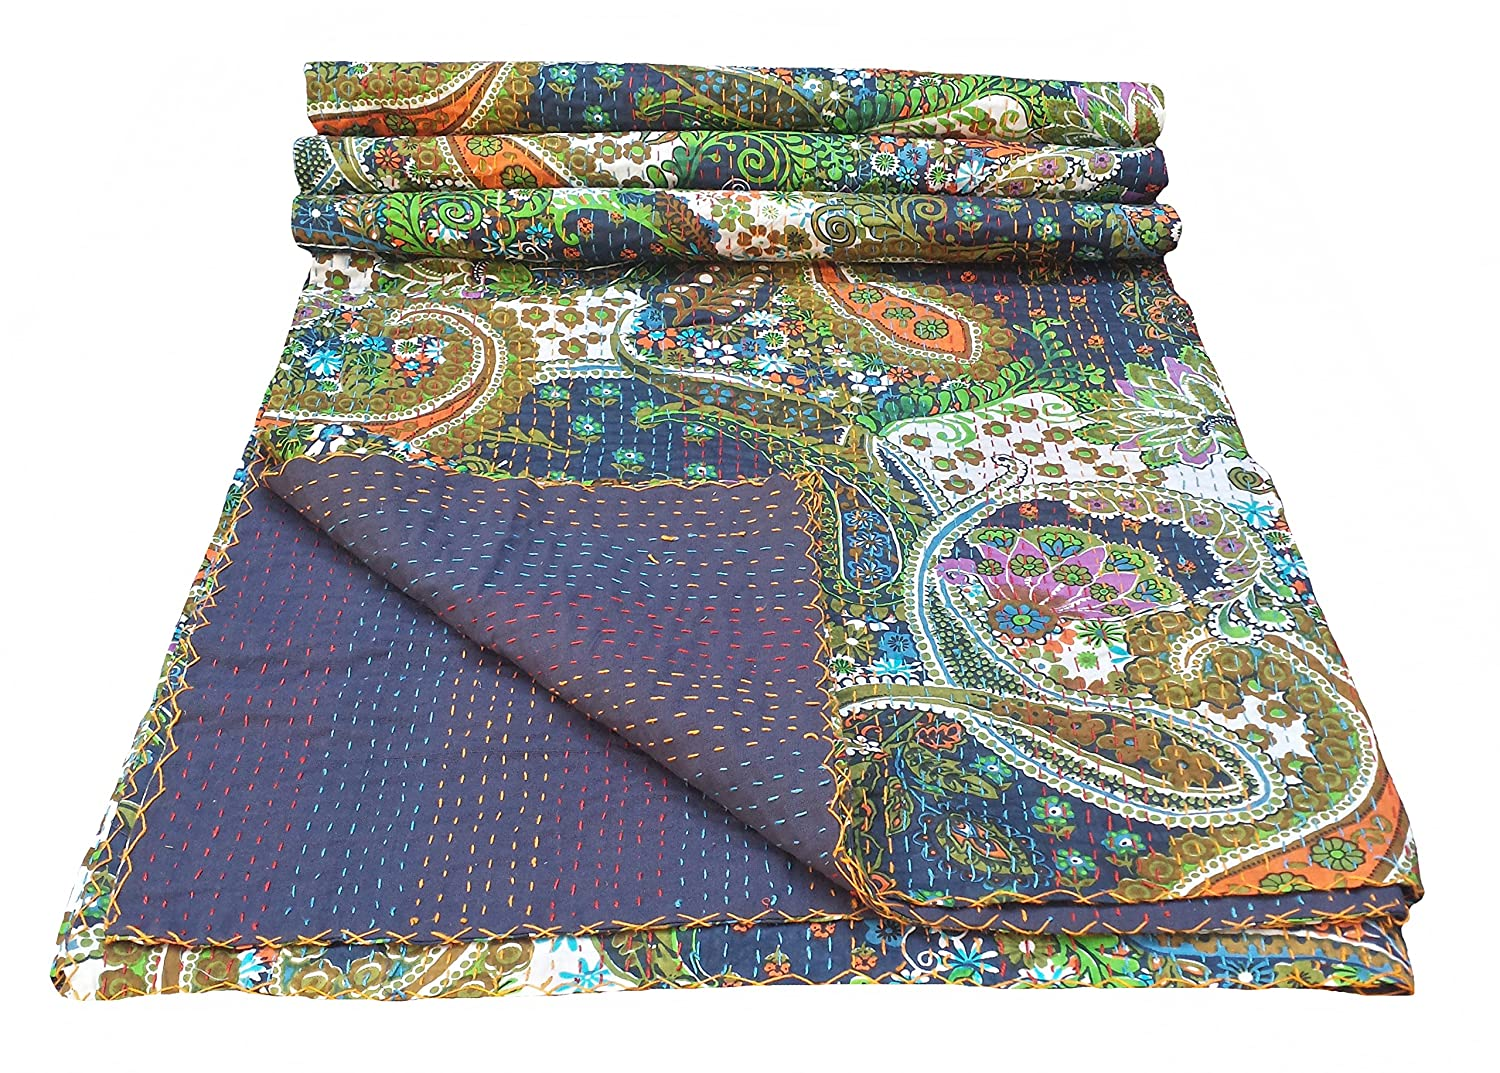 Baby quilts bed covers - Multicolor Paisley Print King Size Kantha Quilt Kantha Blanket Bed Cover King Kantha Bedspread Bohemian Bedding Kantha Size 90